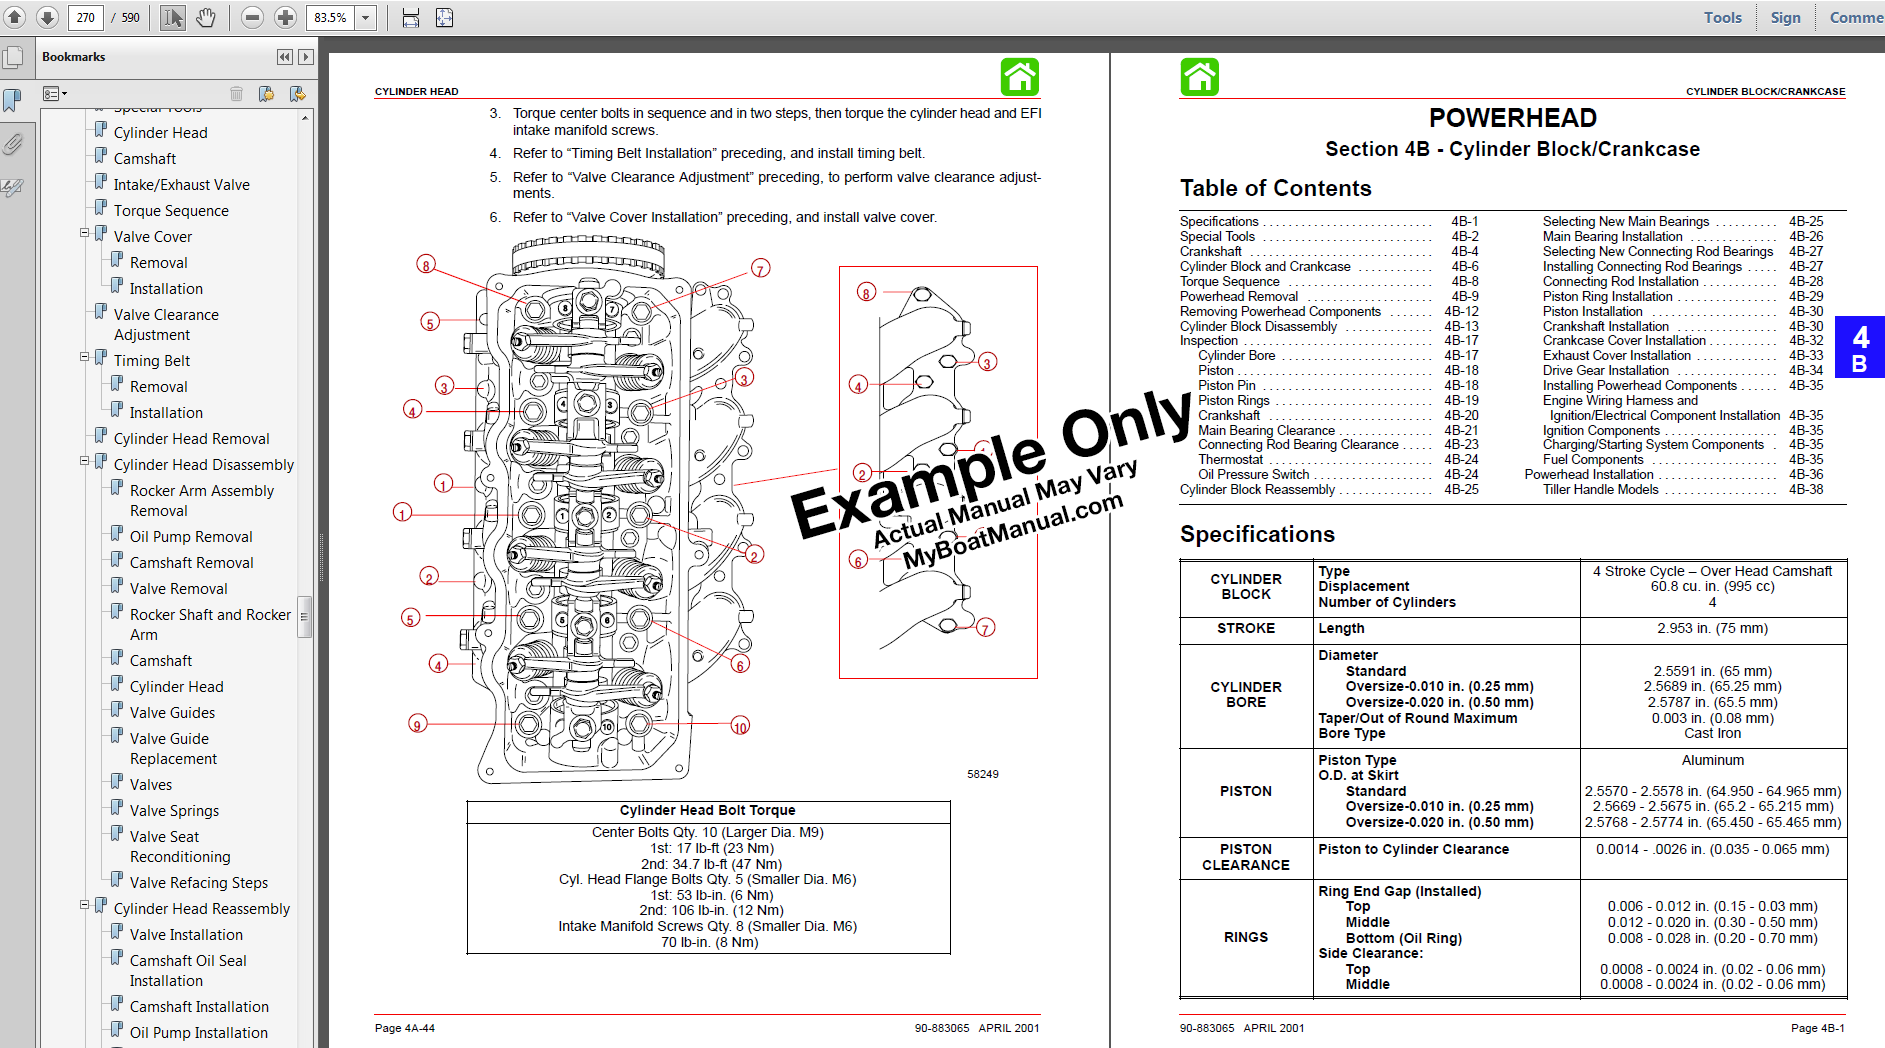 wiring diagram ... 2000-2004 Yamaha Outboard Motor Service Manual |  MyBoatManual wiring diagram .